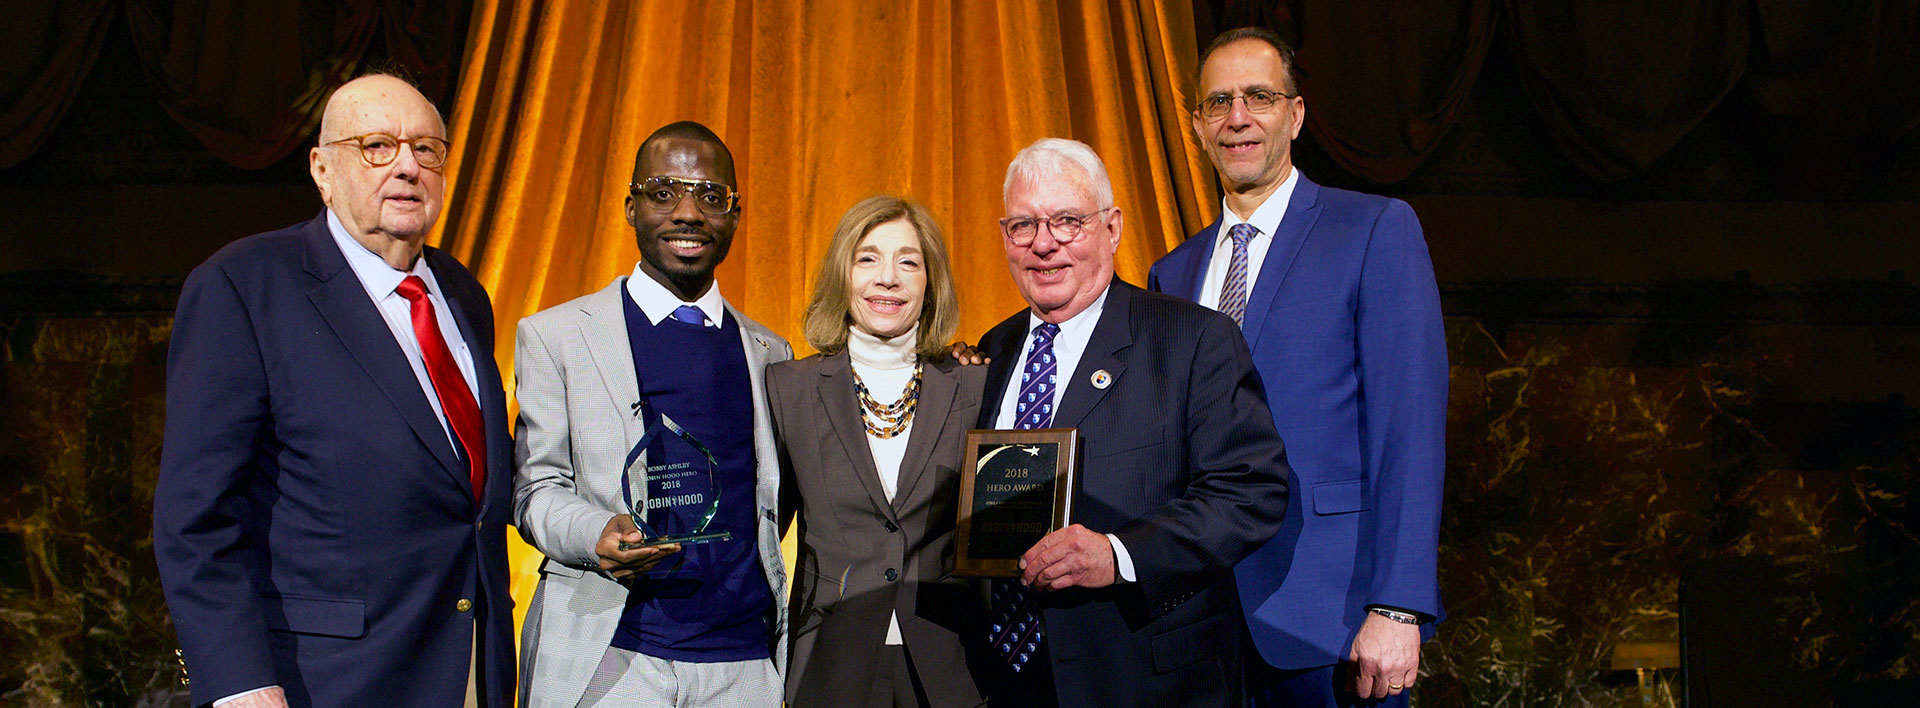 Robin Hood Foundation honors Guttman and alumnus Bobby Ashley with Hero Award